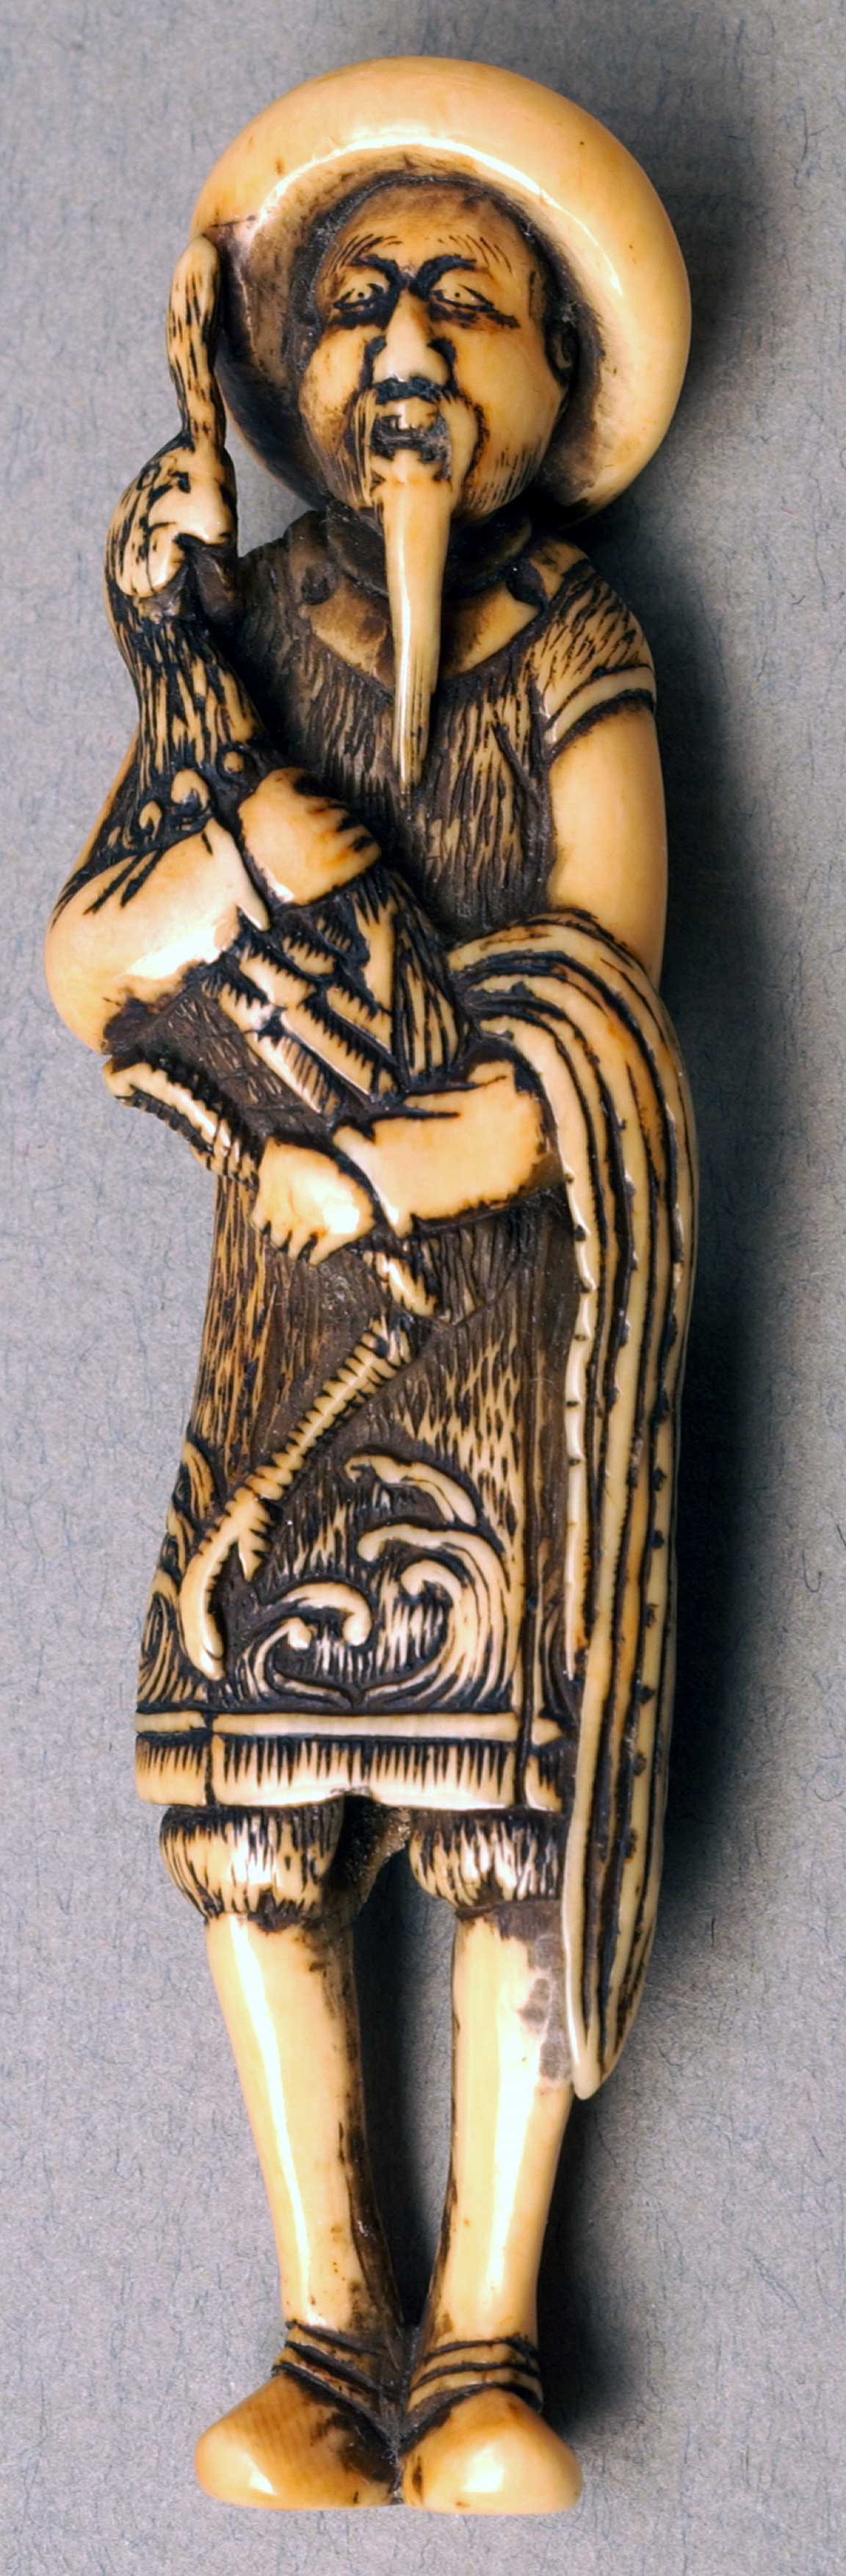 Netsuke depicting Chinese man